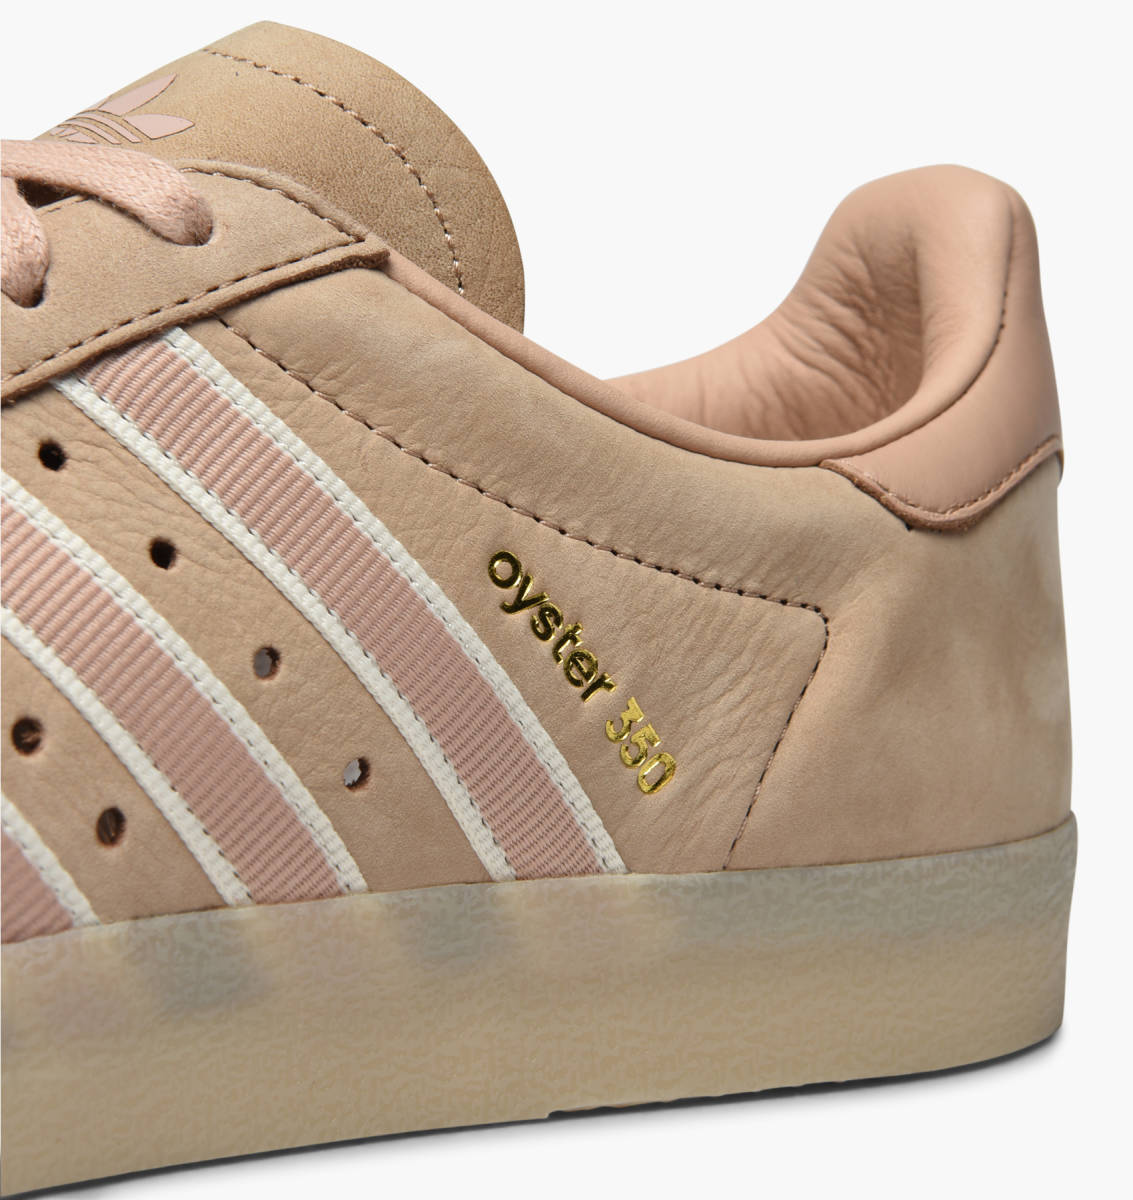 043bd5751 adidas Originals x Oyster 350 in pink - DB1976